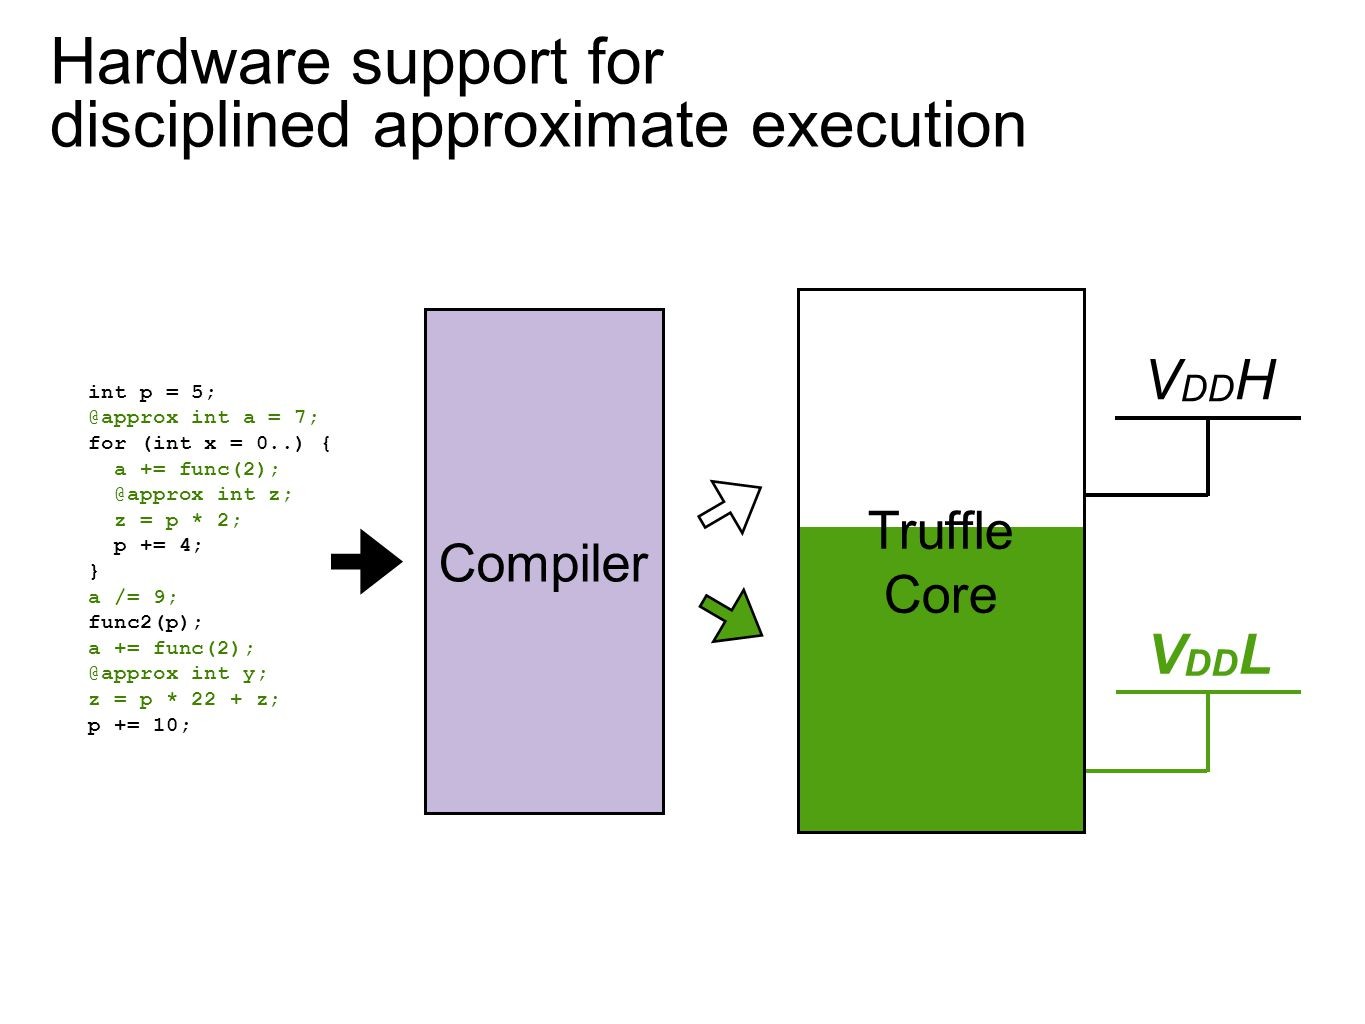 Hardware support for disciplined approximate execution